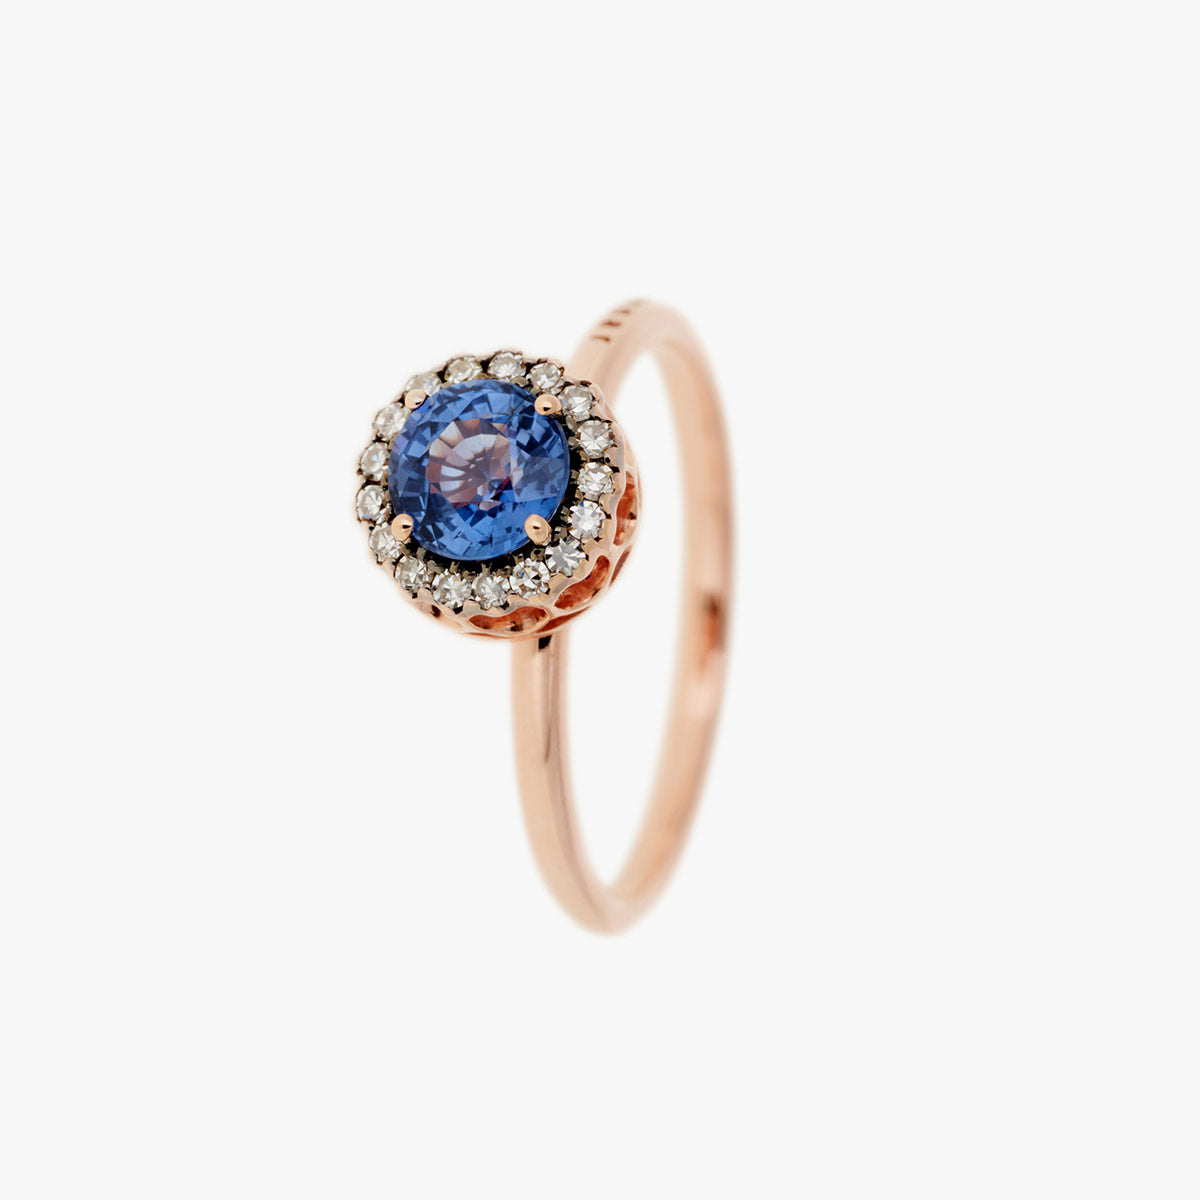 Beirut Ring Ring with Diamonds and Blue Sapphires